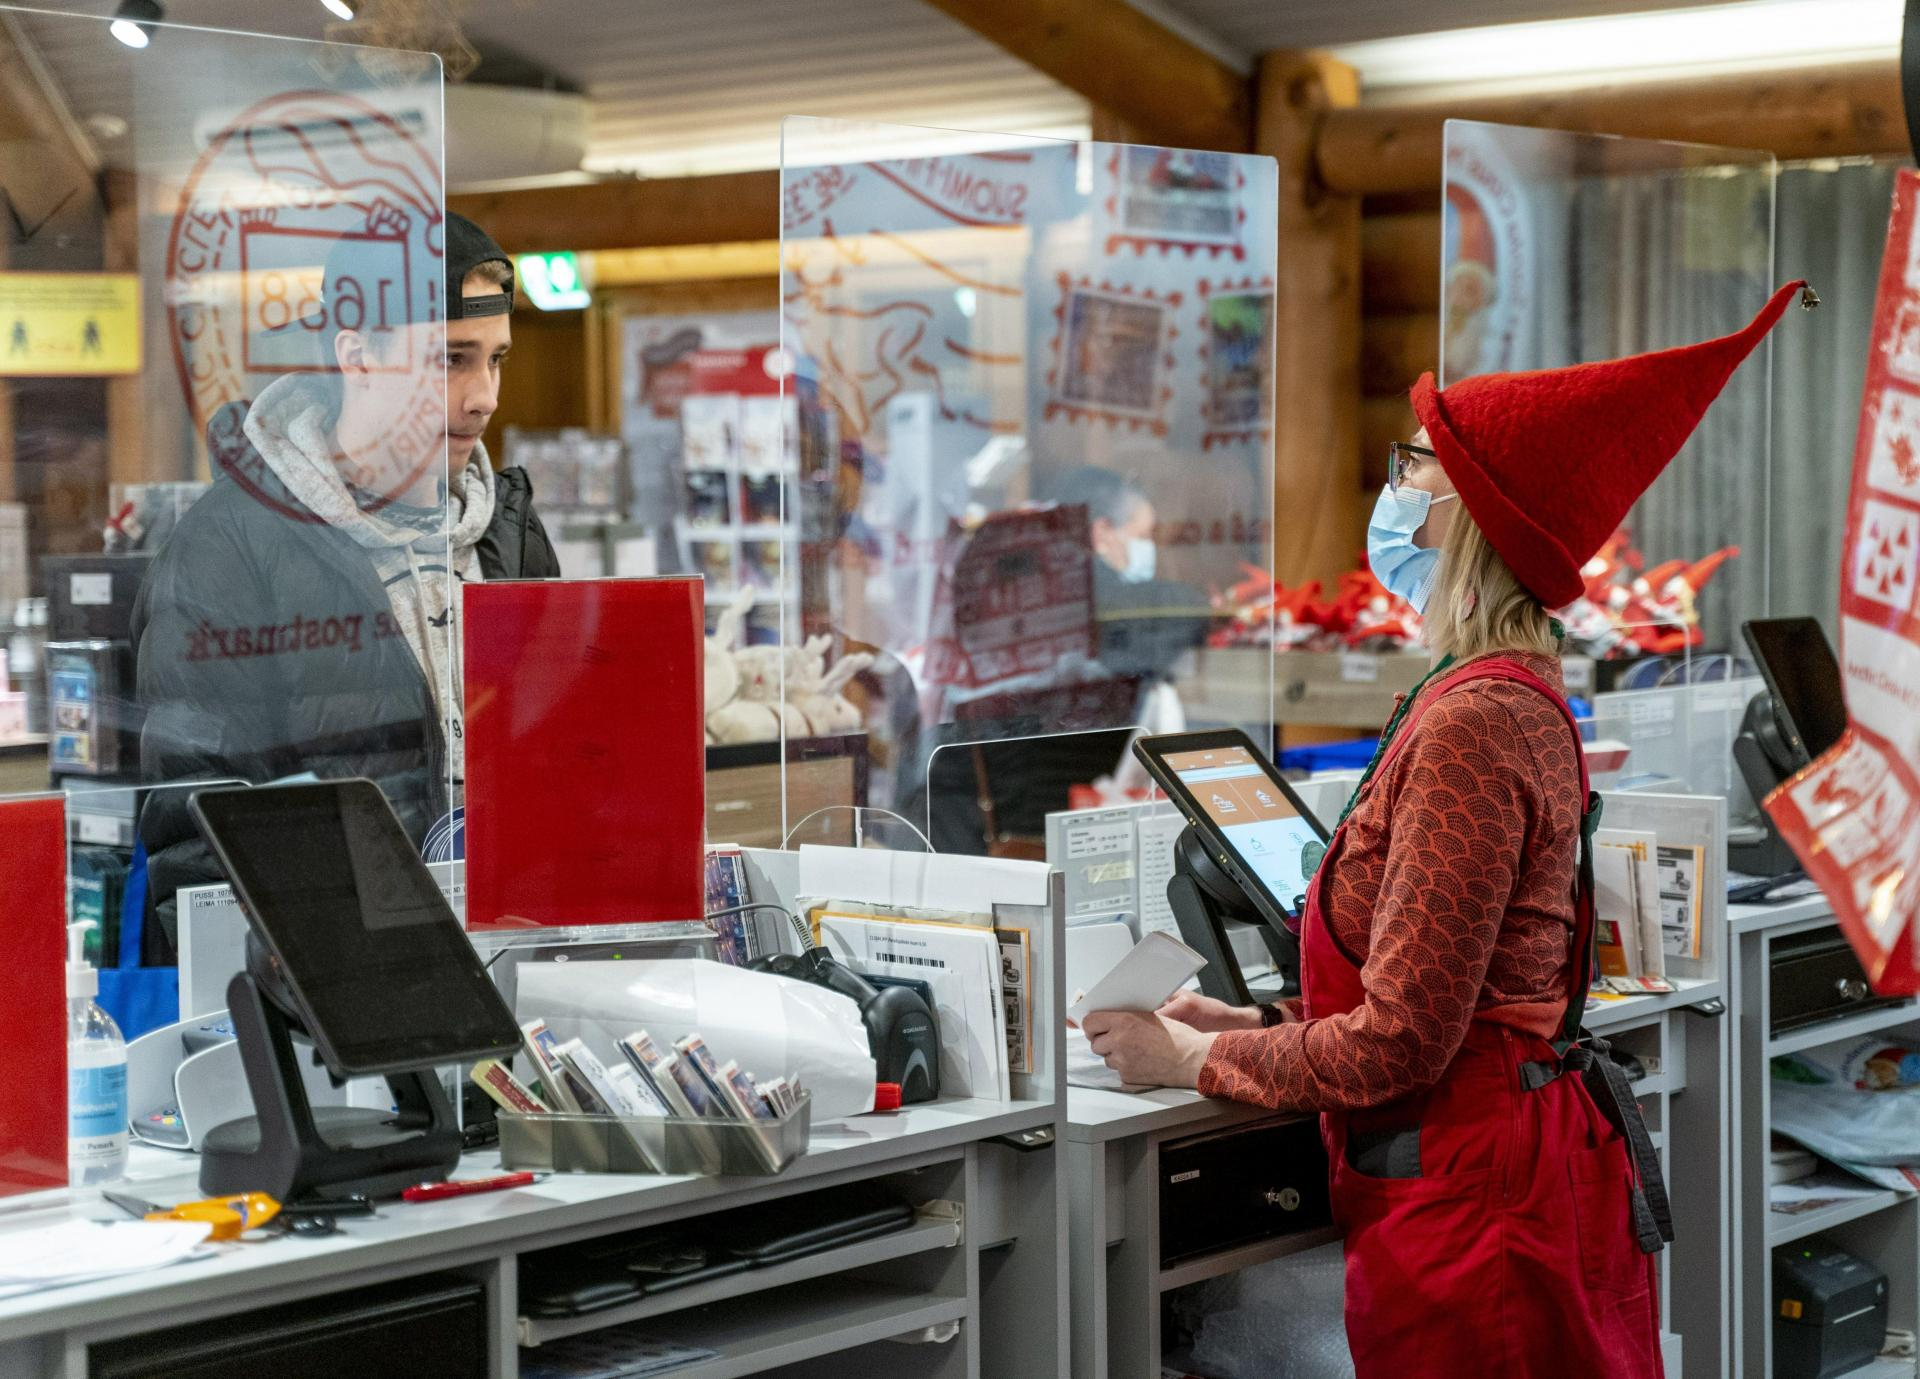 An employee wearing a Christmas hat and face mask to protect against the coronavirus serves a customer through a plexiglass screen at Santa's Main Post Office at Santa Claus Village in the Arctic Circle, Rovaniemi, Finnish Lapland.